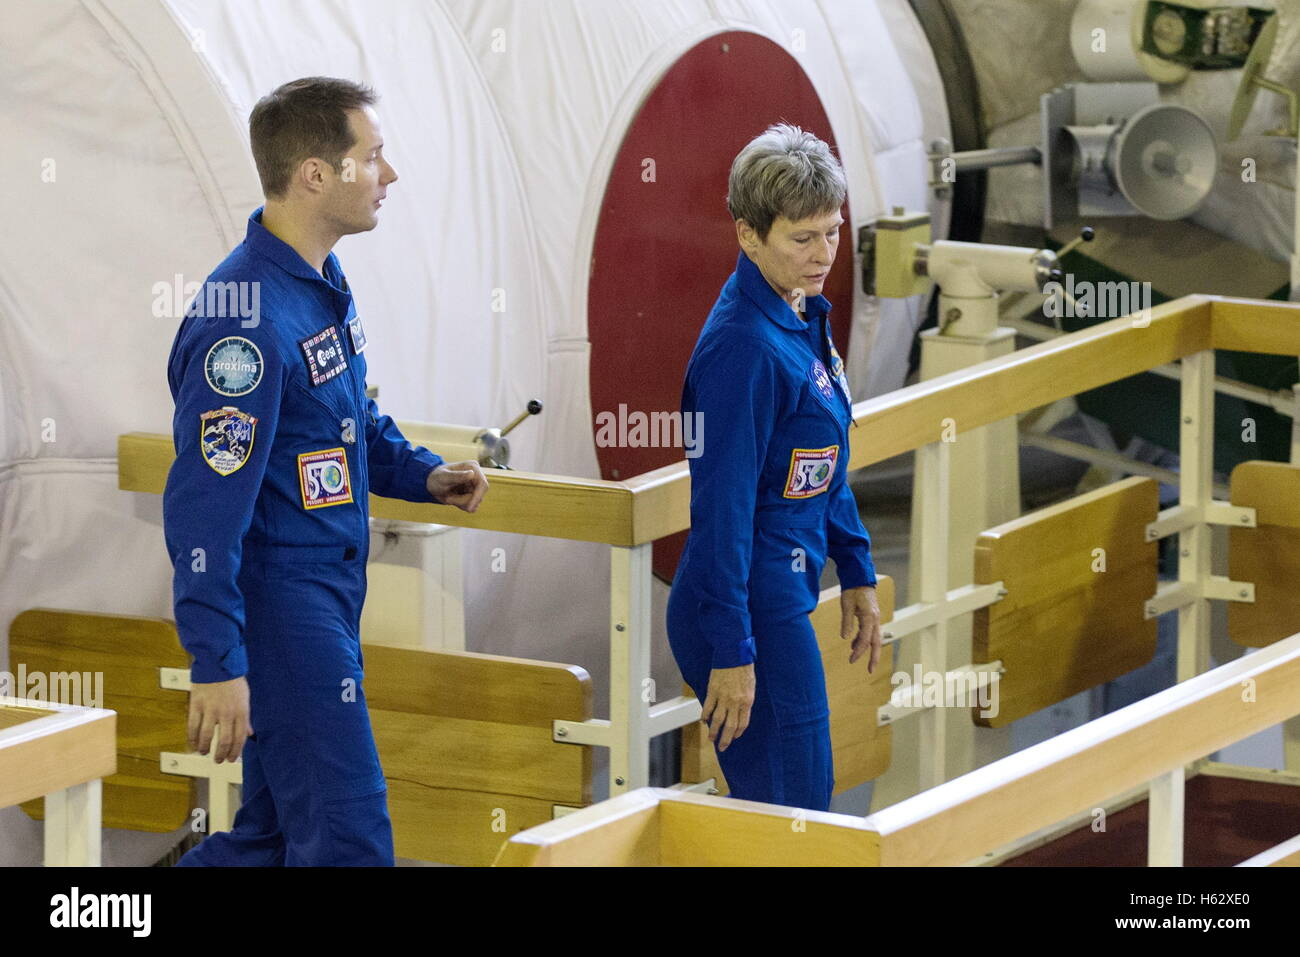 Moscow Region, Russia. 24th Oct, 2016. ISS Expedition 49/50 main crew members, astronauts Thomas Pesquet (ESA) and - Stock Image